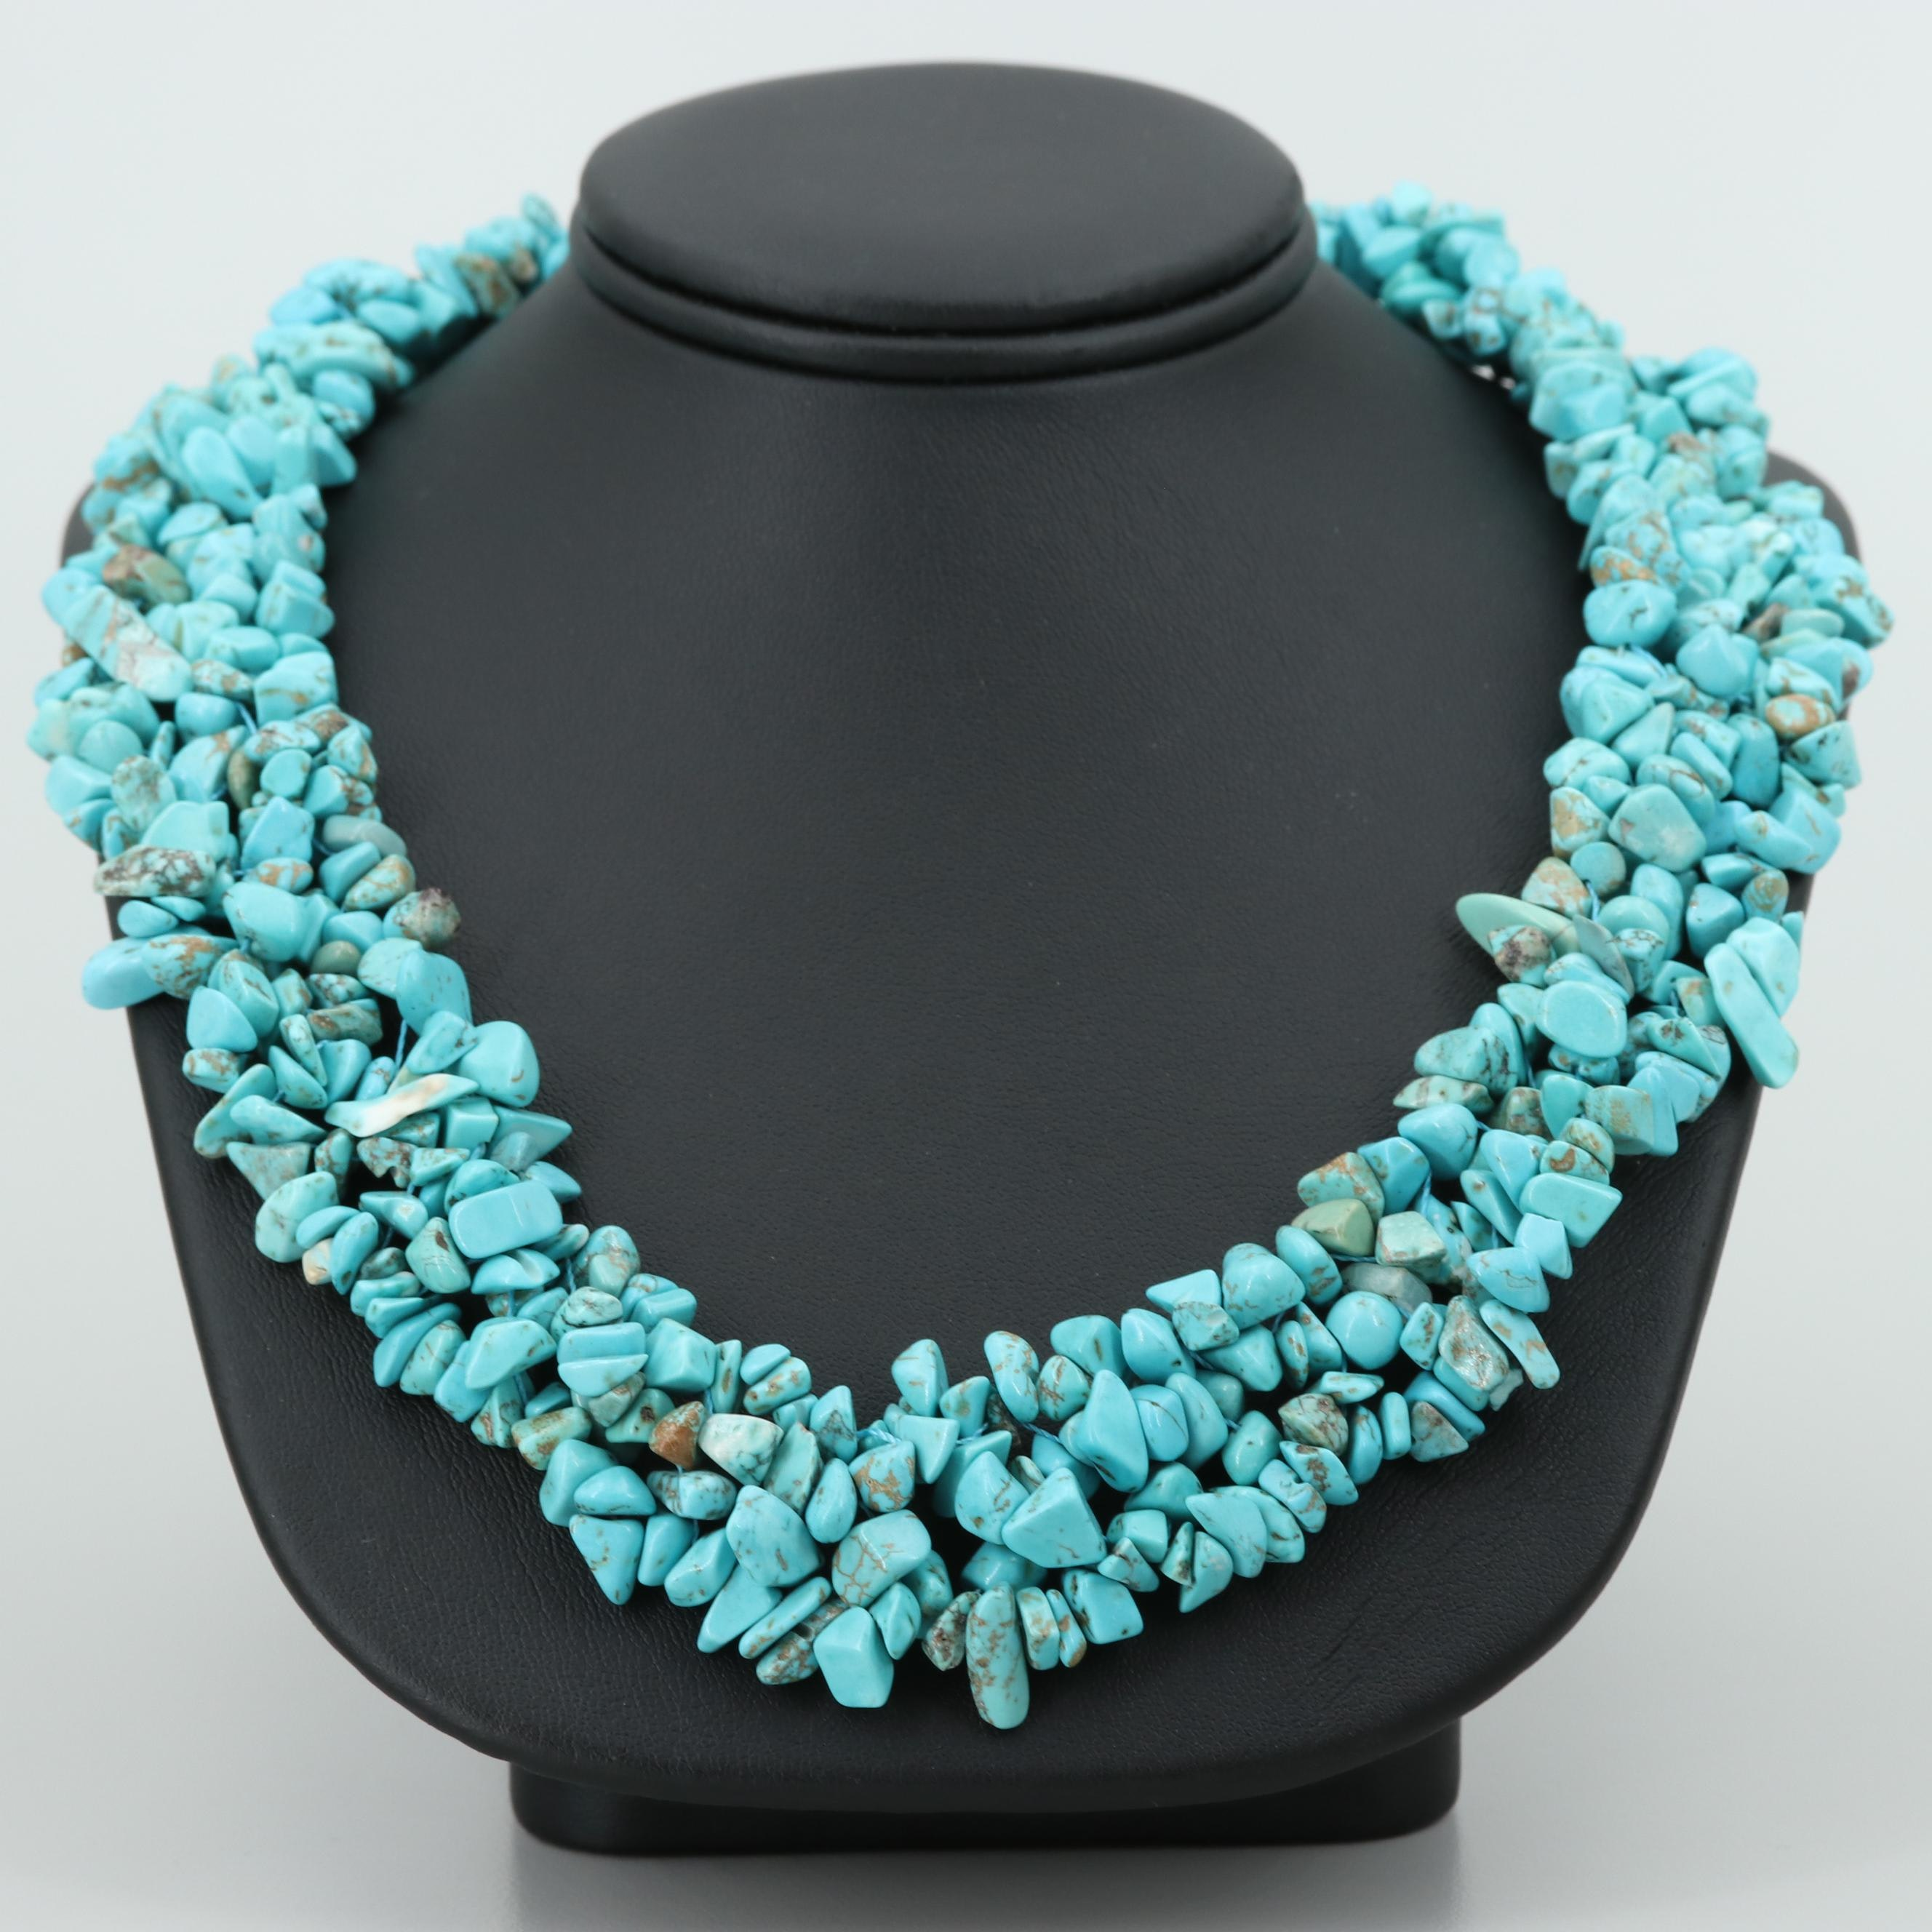 Silver Tone Imitation Turquoise Woven Necklace